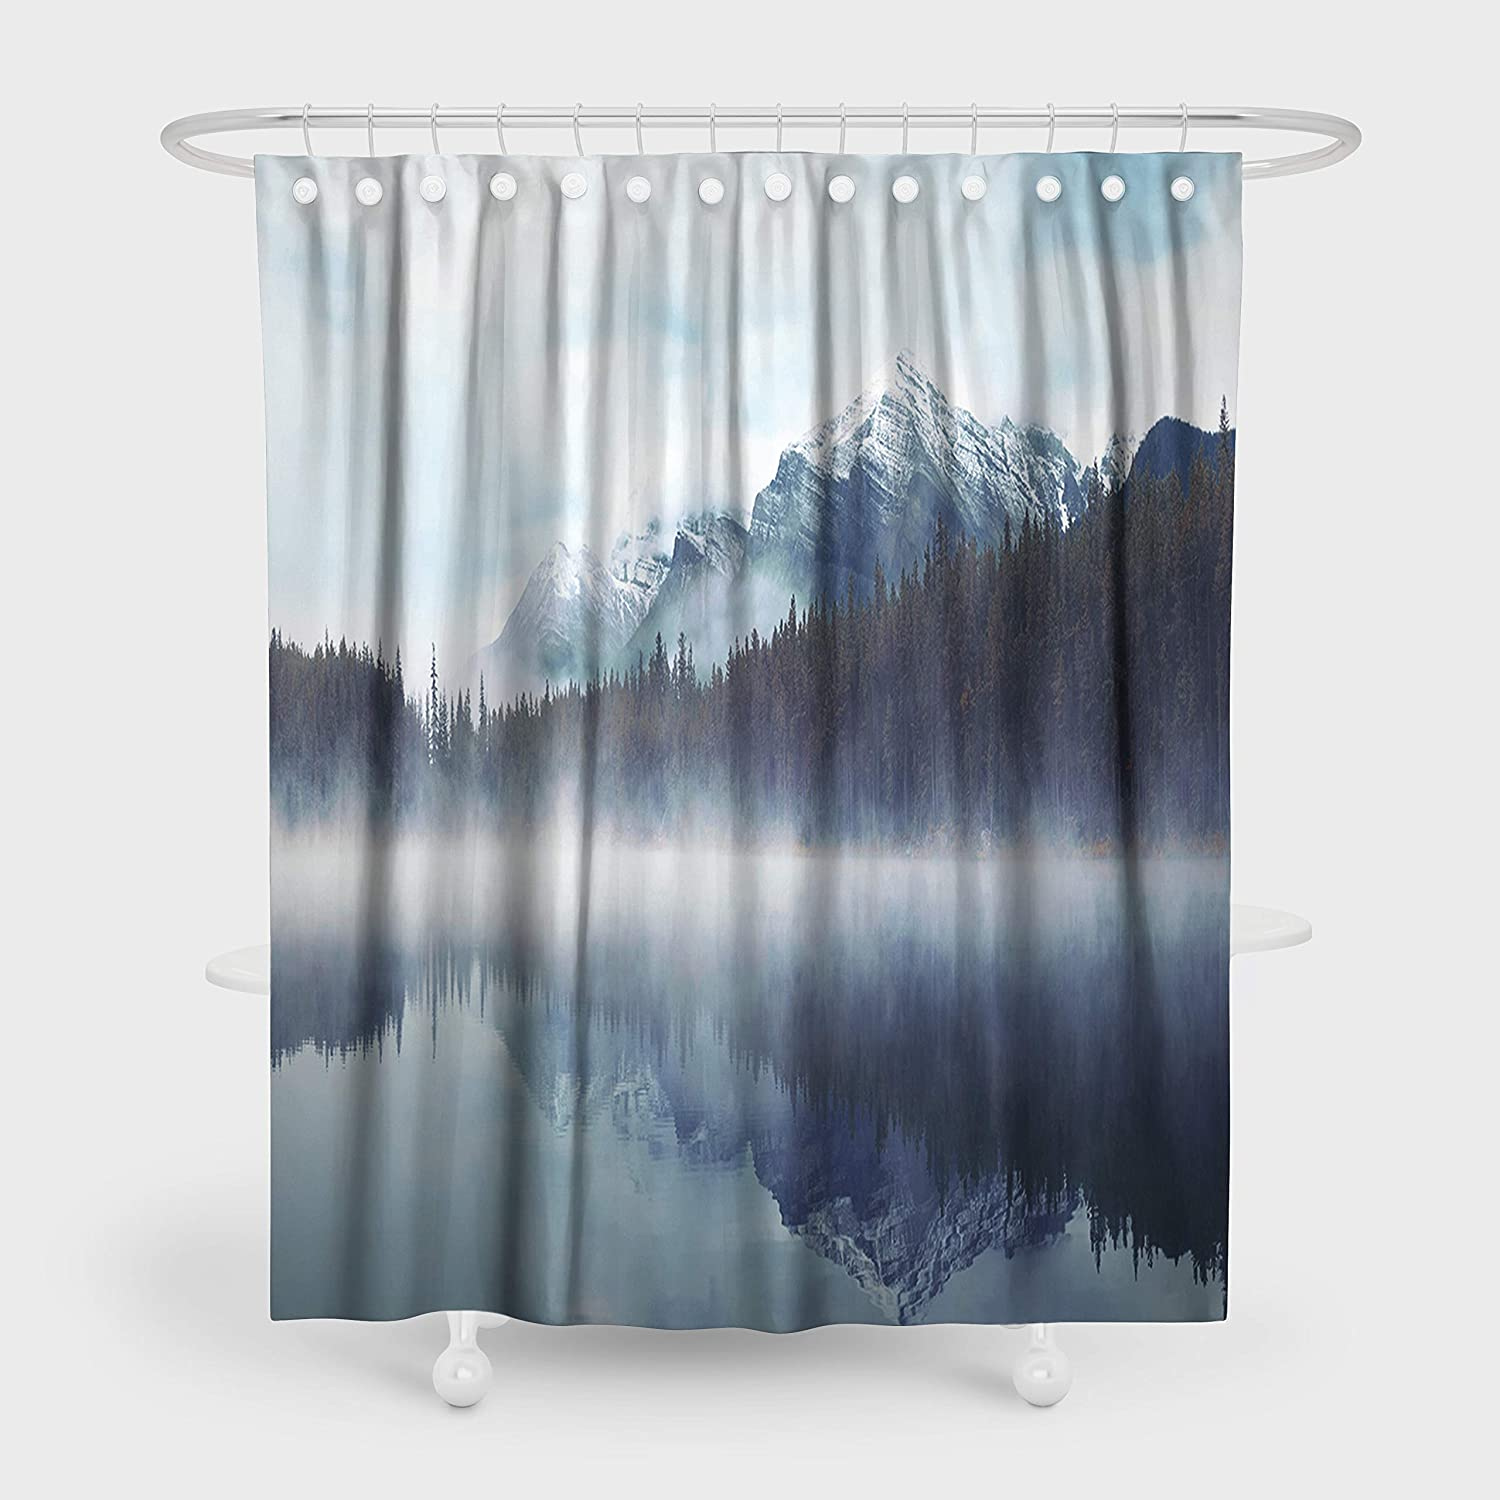 """Mountain Shower Curtain Set Nature Forest Misty Cliff Landscape Waterproof Polyester Fabric Art Bathroom Decor Shower Curtain 72""""x72"""" with Hooks"""